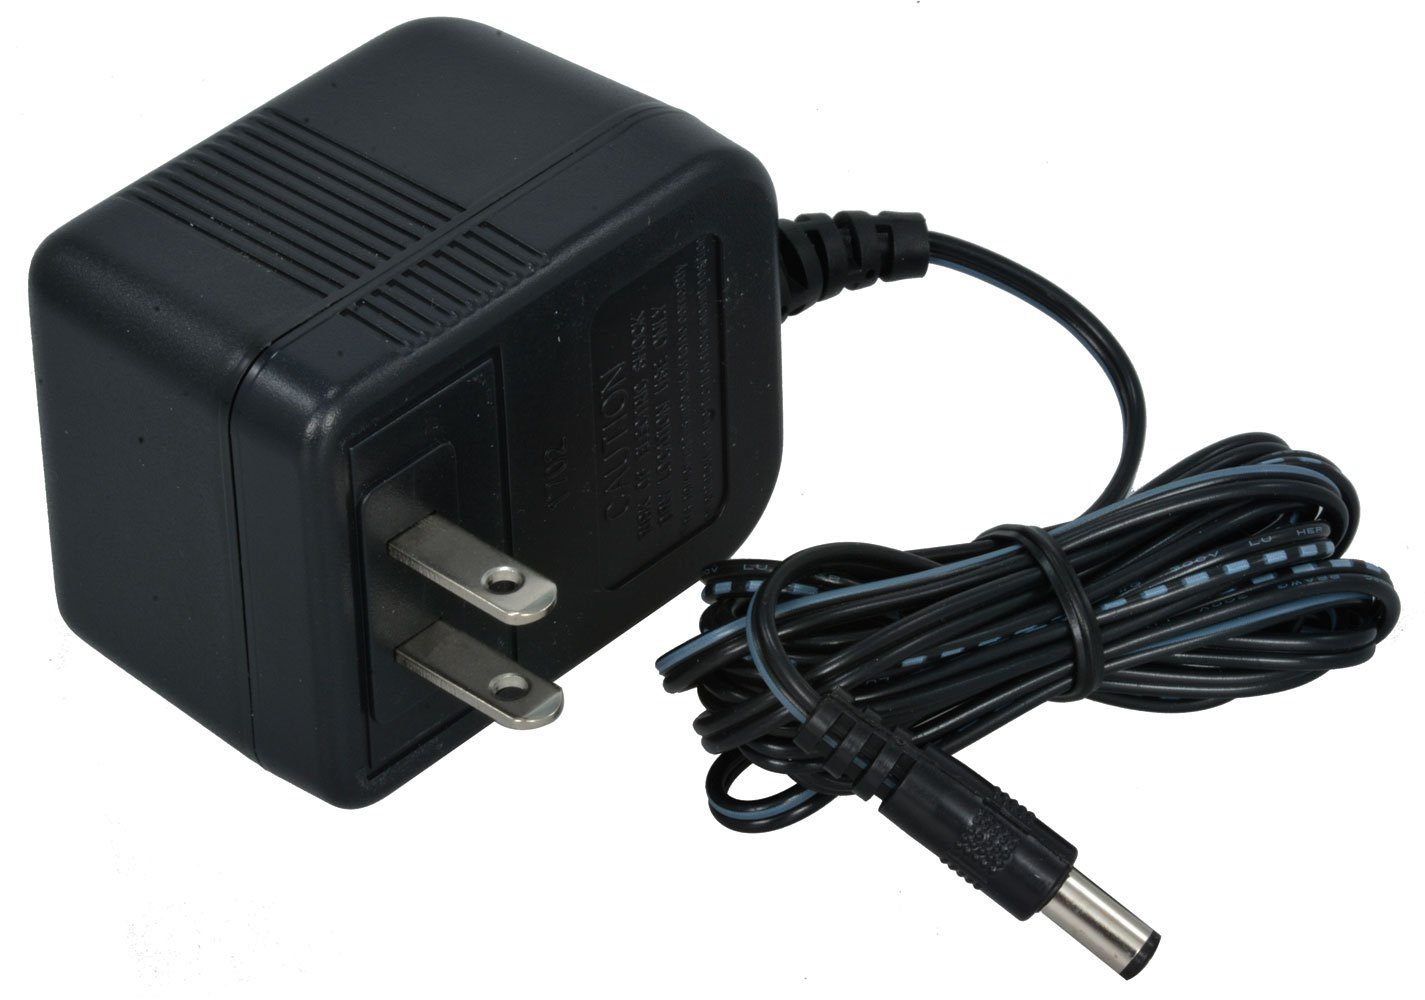 Jameco Reliapro ACU120100D0531 AC Translated Adapter safety Wall Transformer to